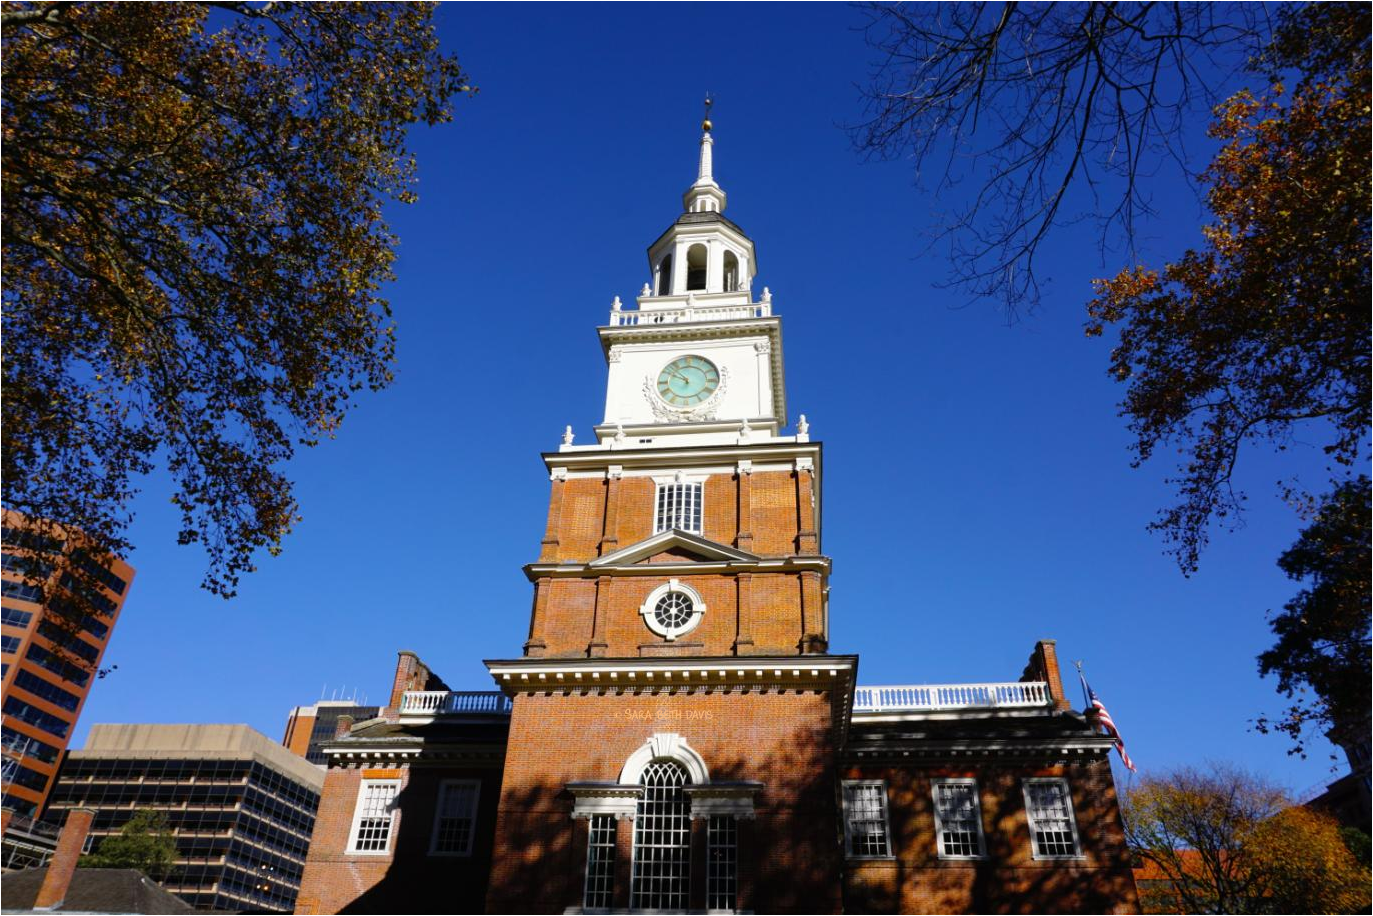 Visiting Independence National Historical Park in Downtown Philadelphia, Pennsylvania